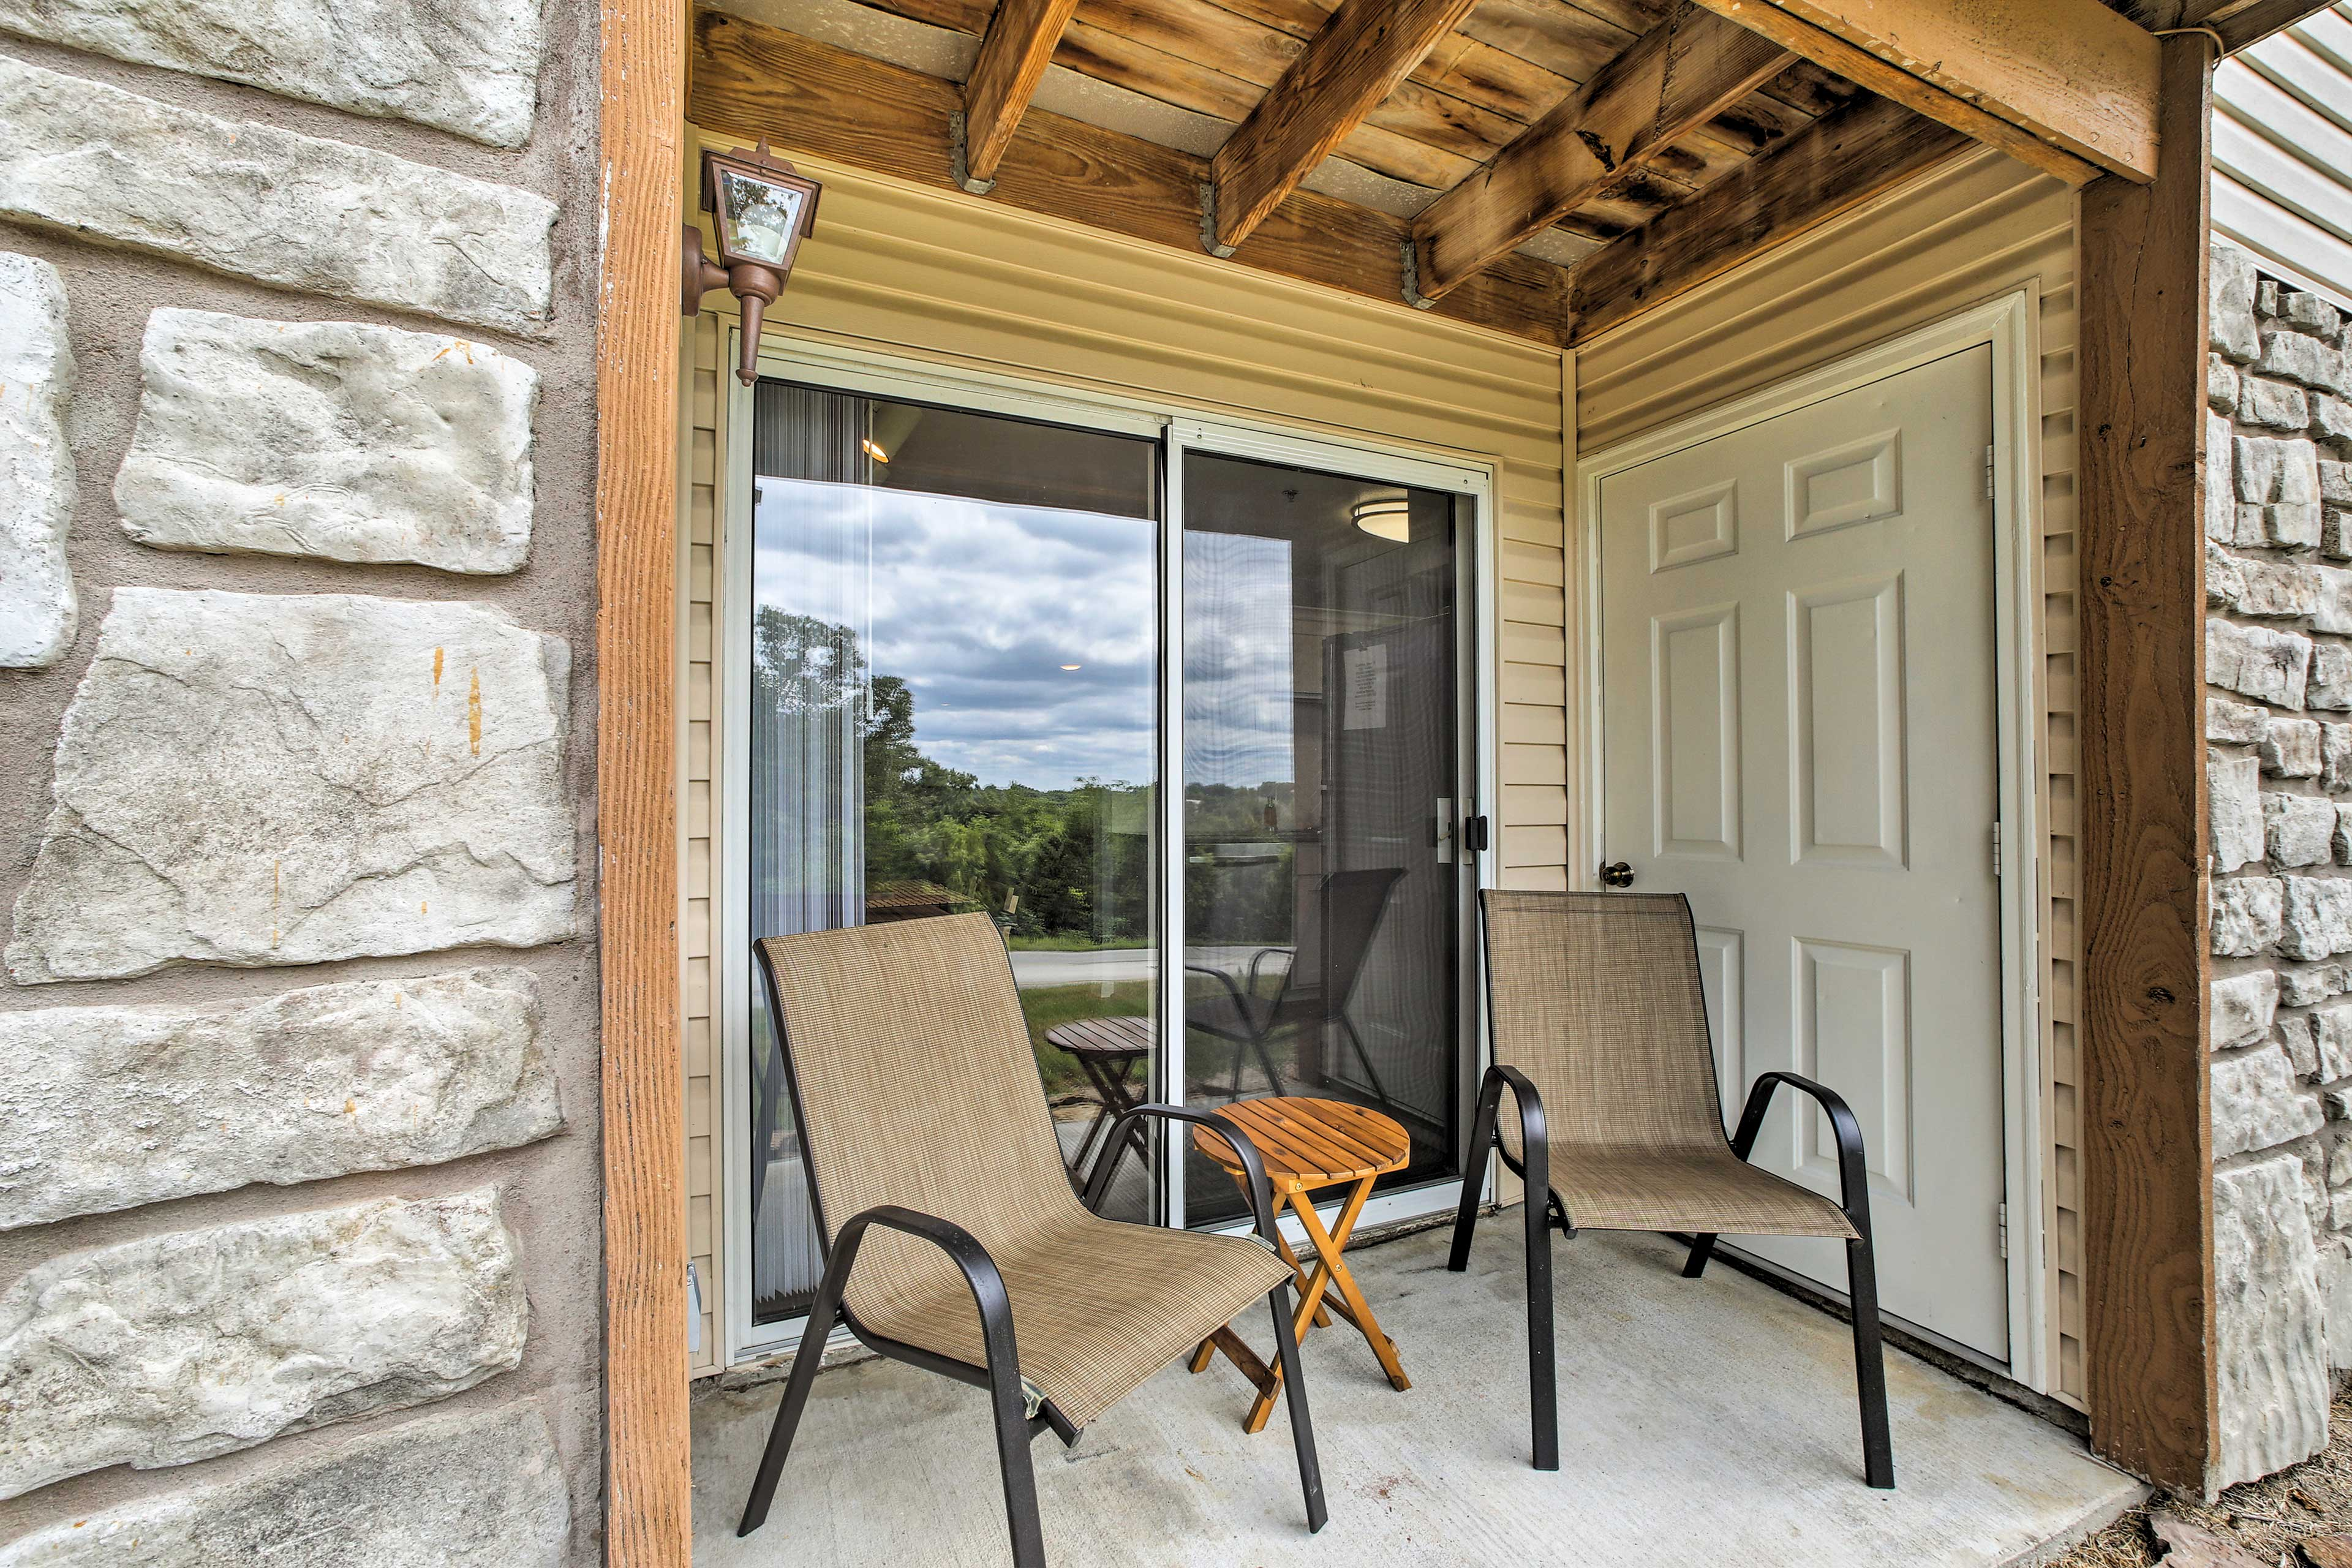 Step outside to get some fresh air on your private patio!